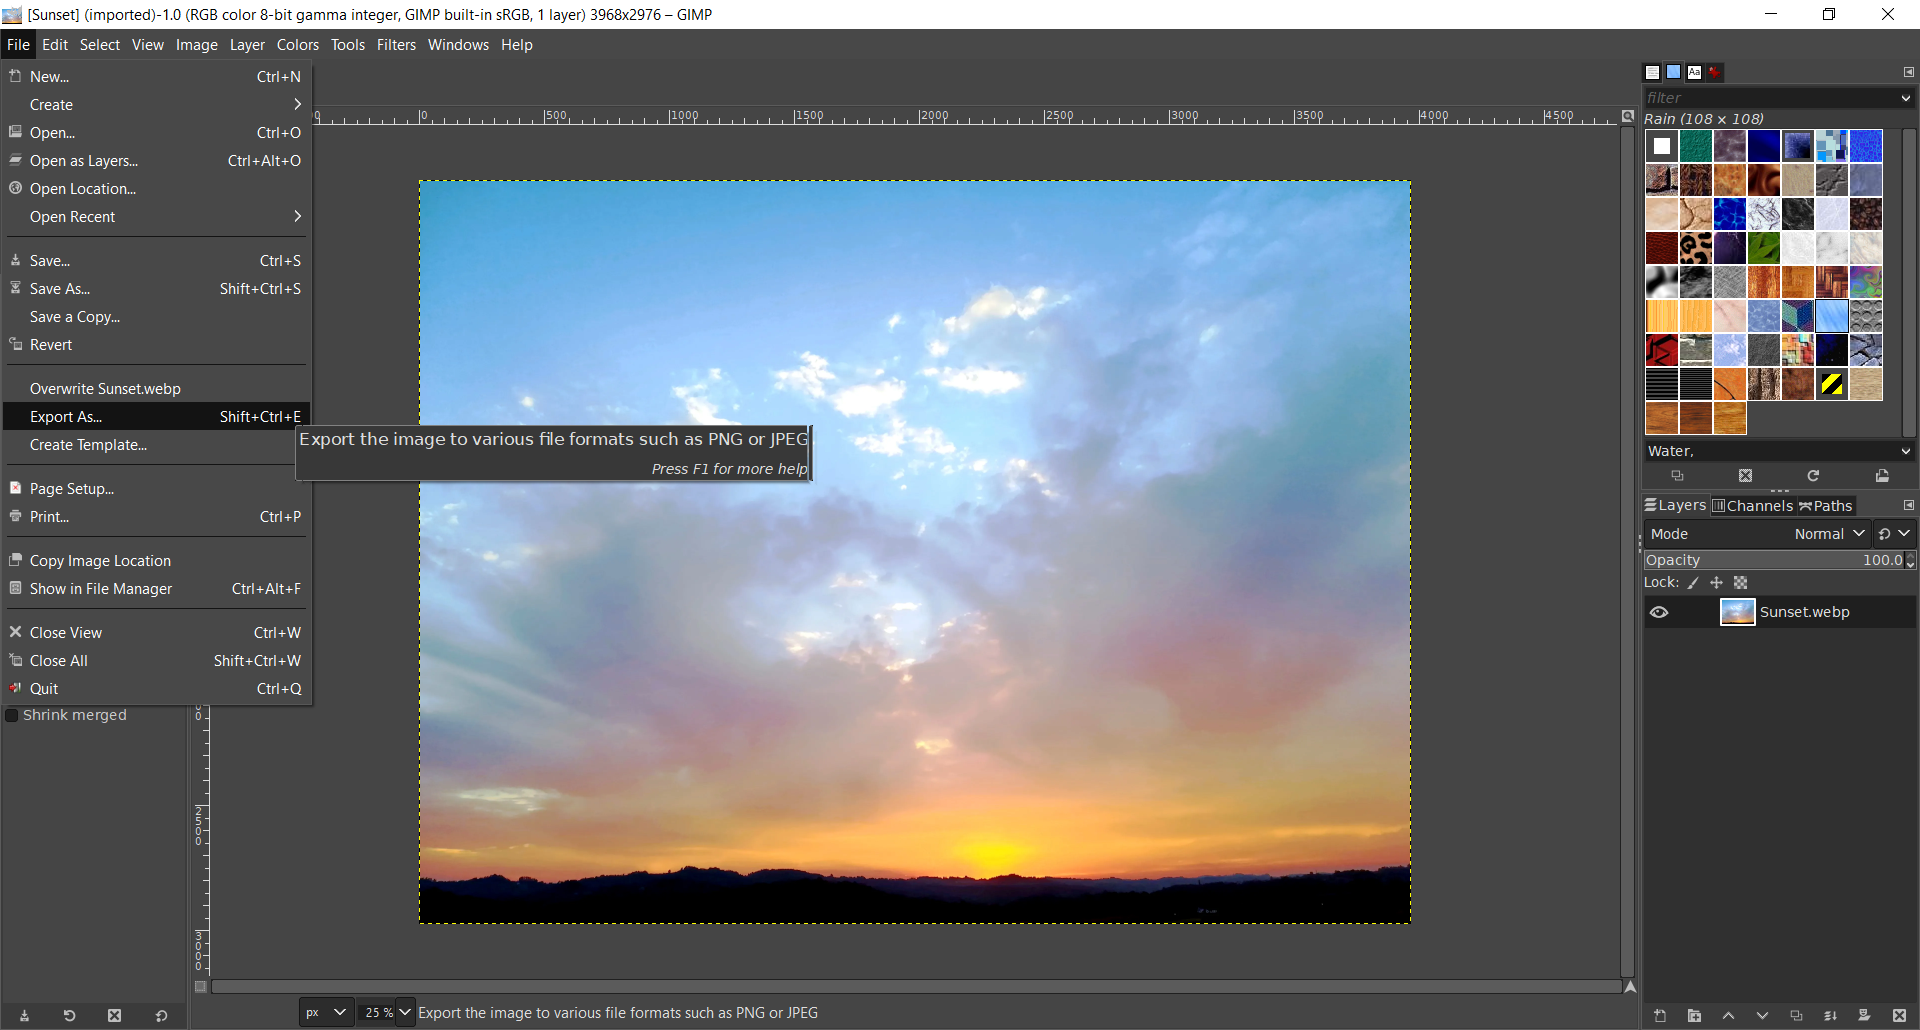 How to convert WEBP to PNG using GIMP?